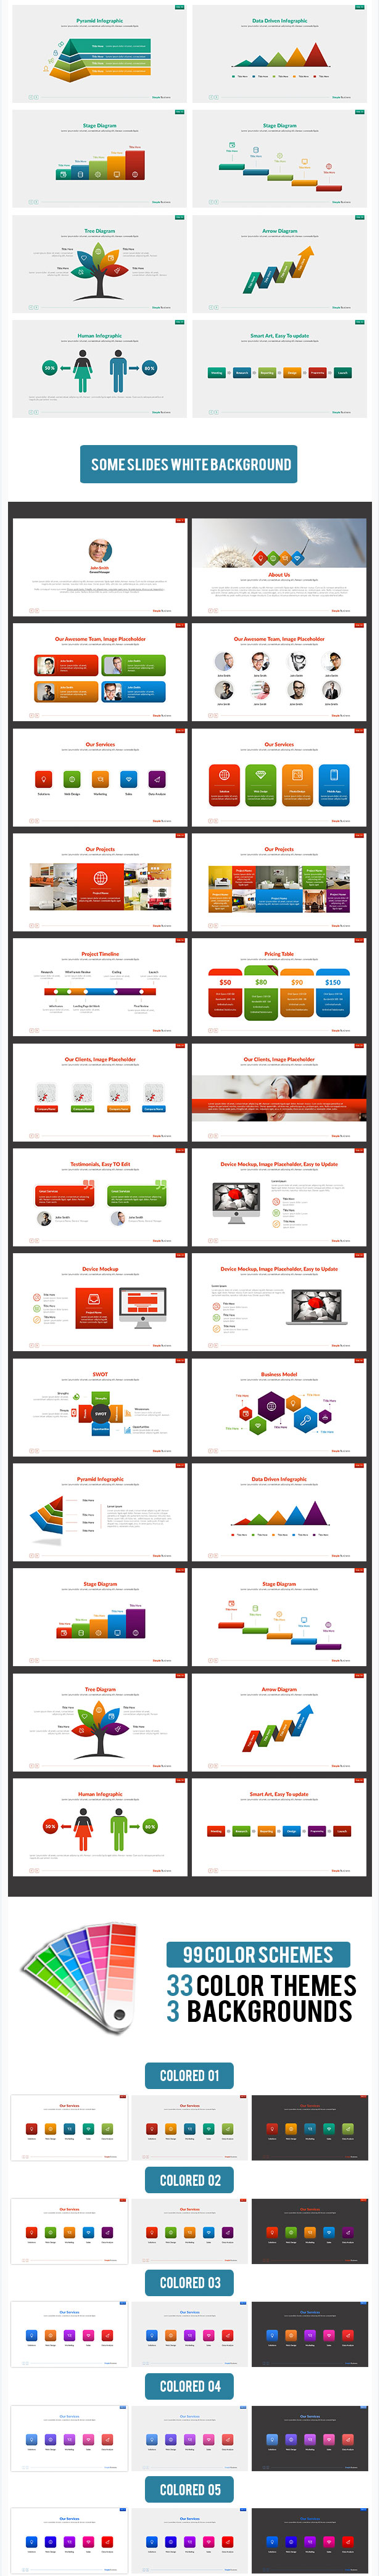 Best Simple Business PowerPoint Presentation Template